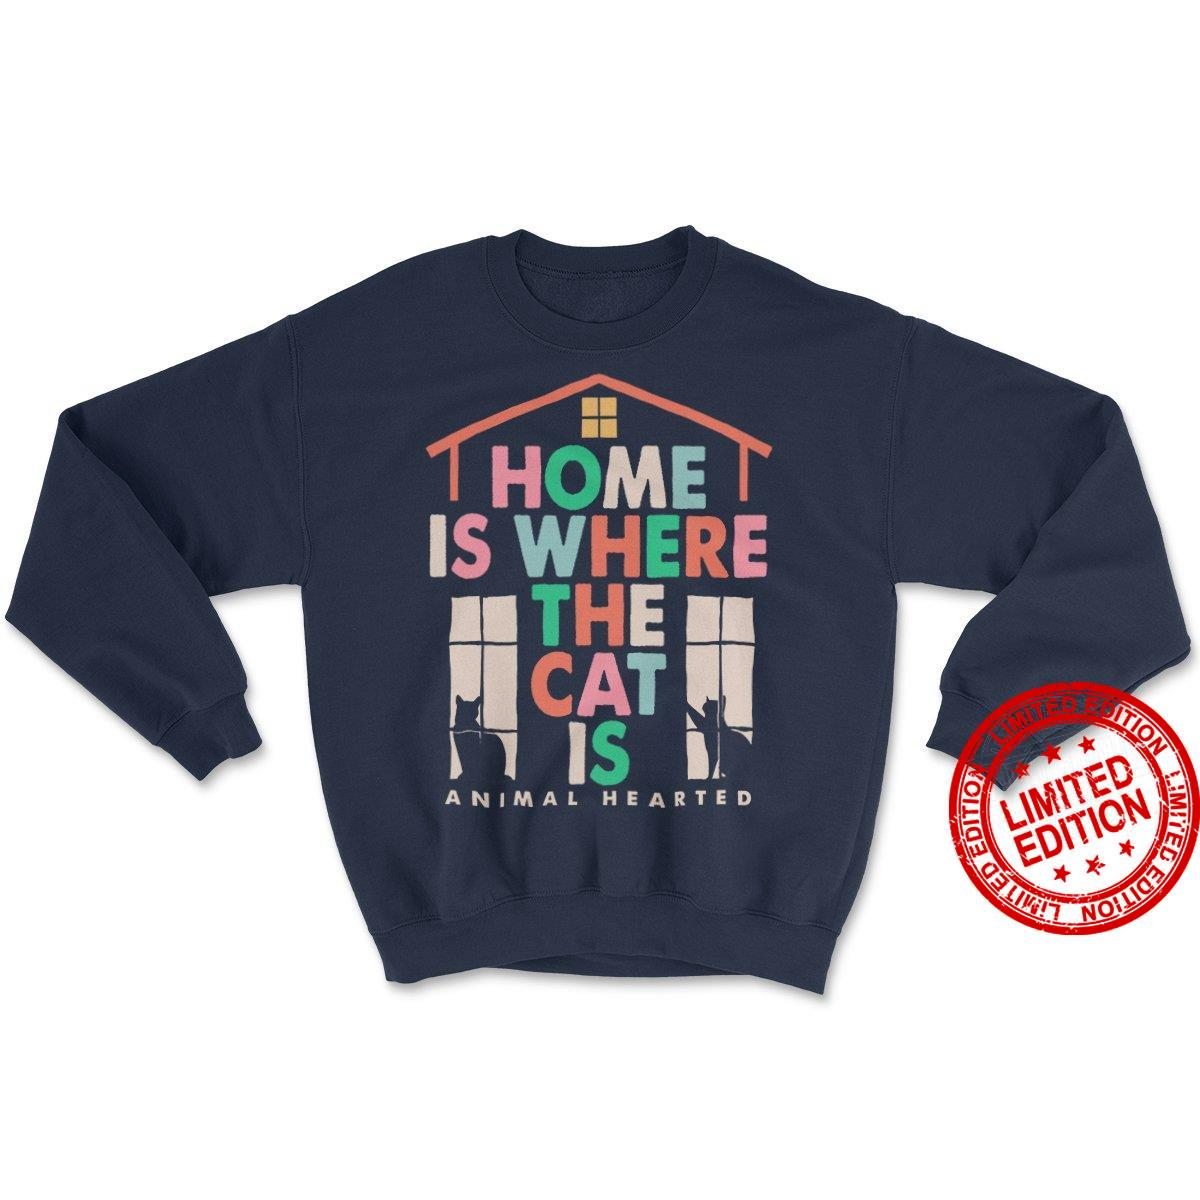 Home Is Where The Cat Is Animal Hearted Shirt